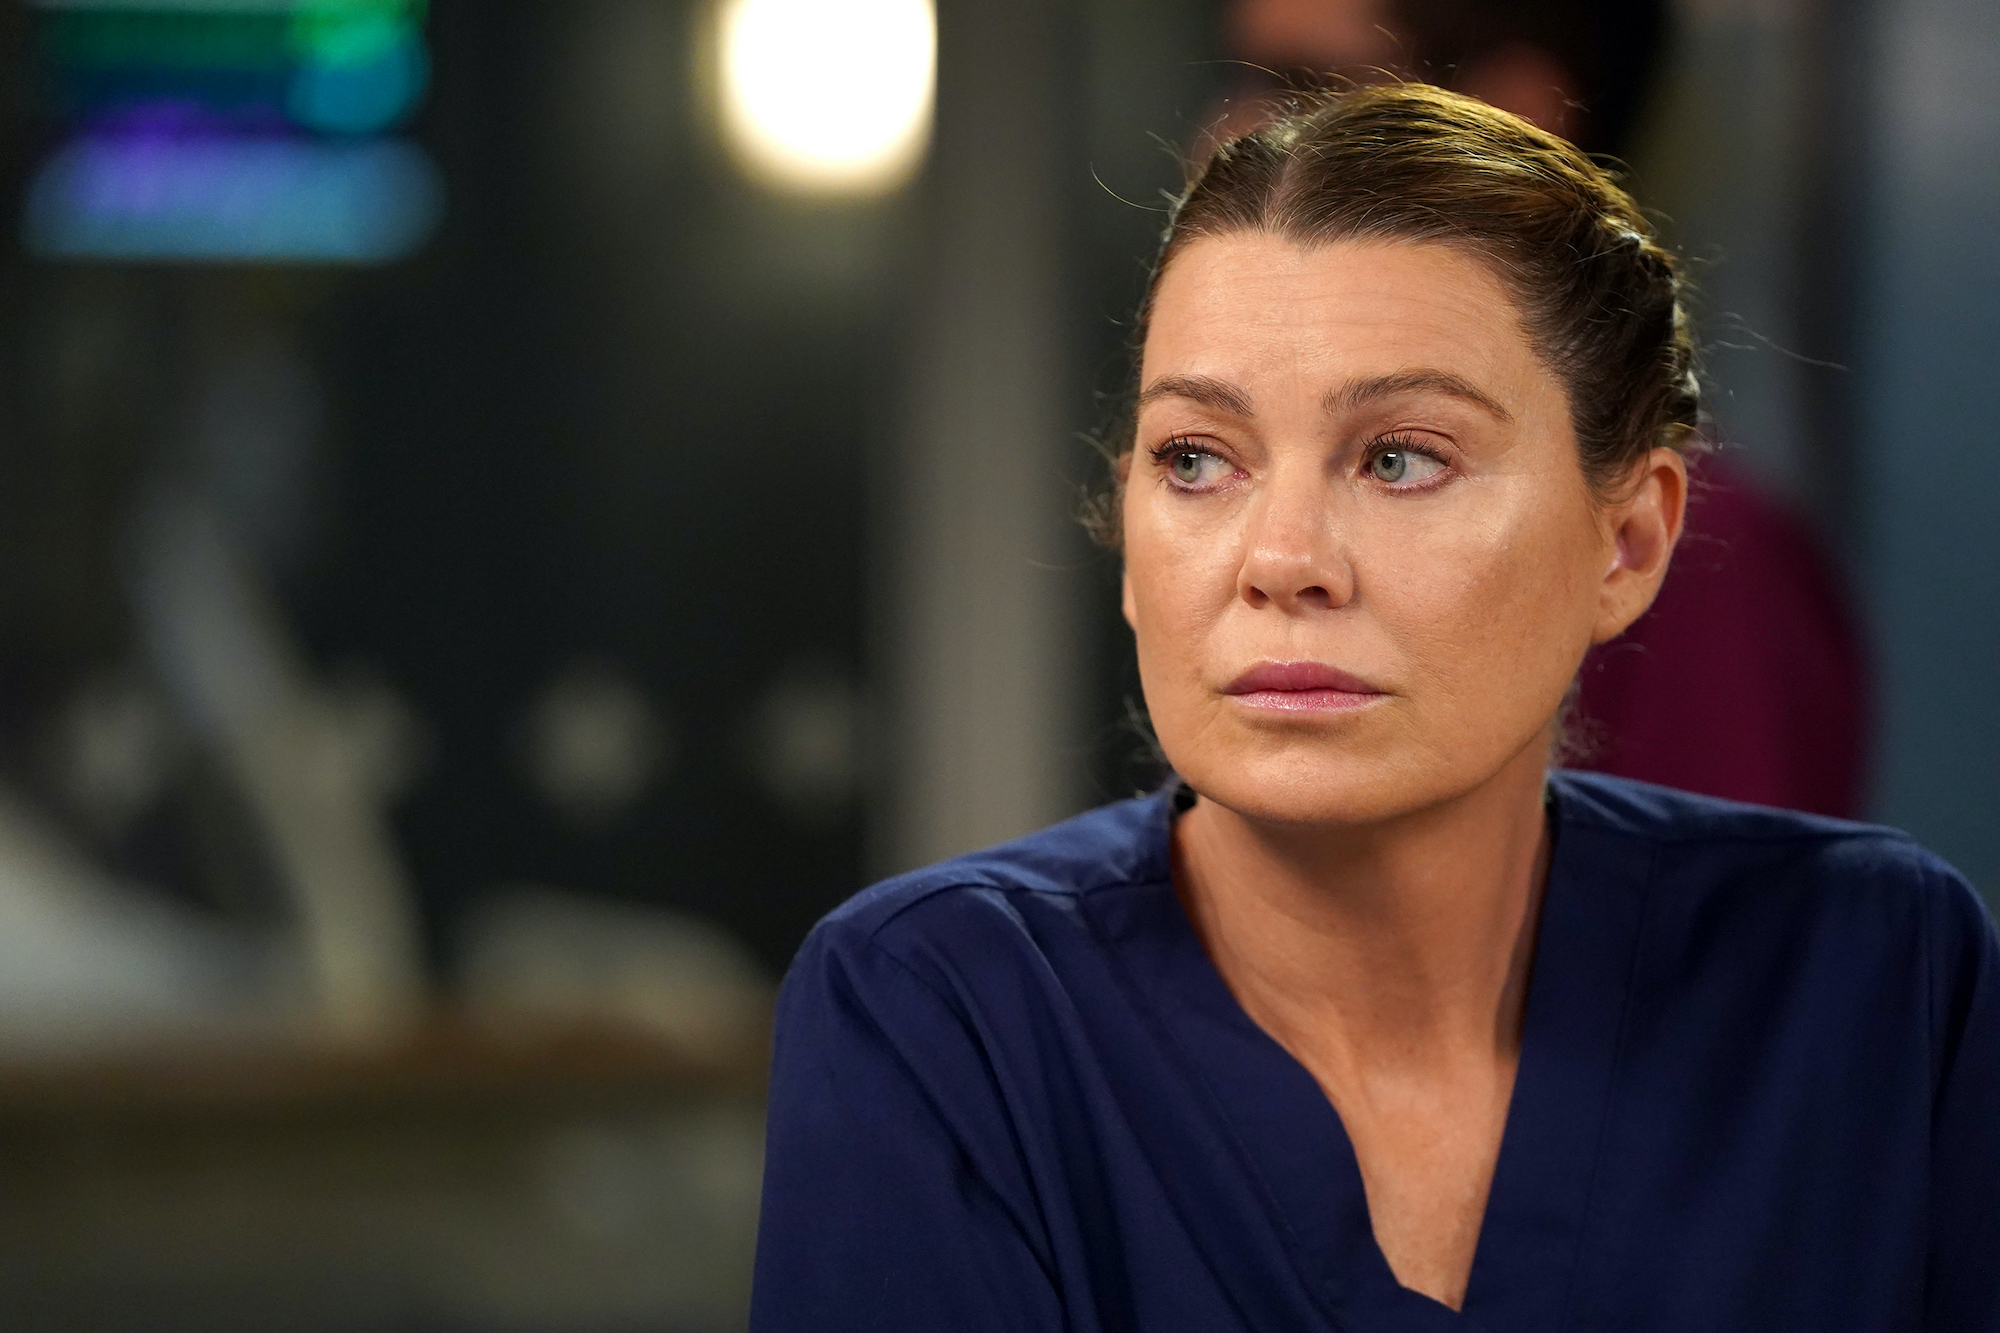 'Grey's Anatomy' Fans Still Call This Intense Scene 'Powerful and Heartbreaking'